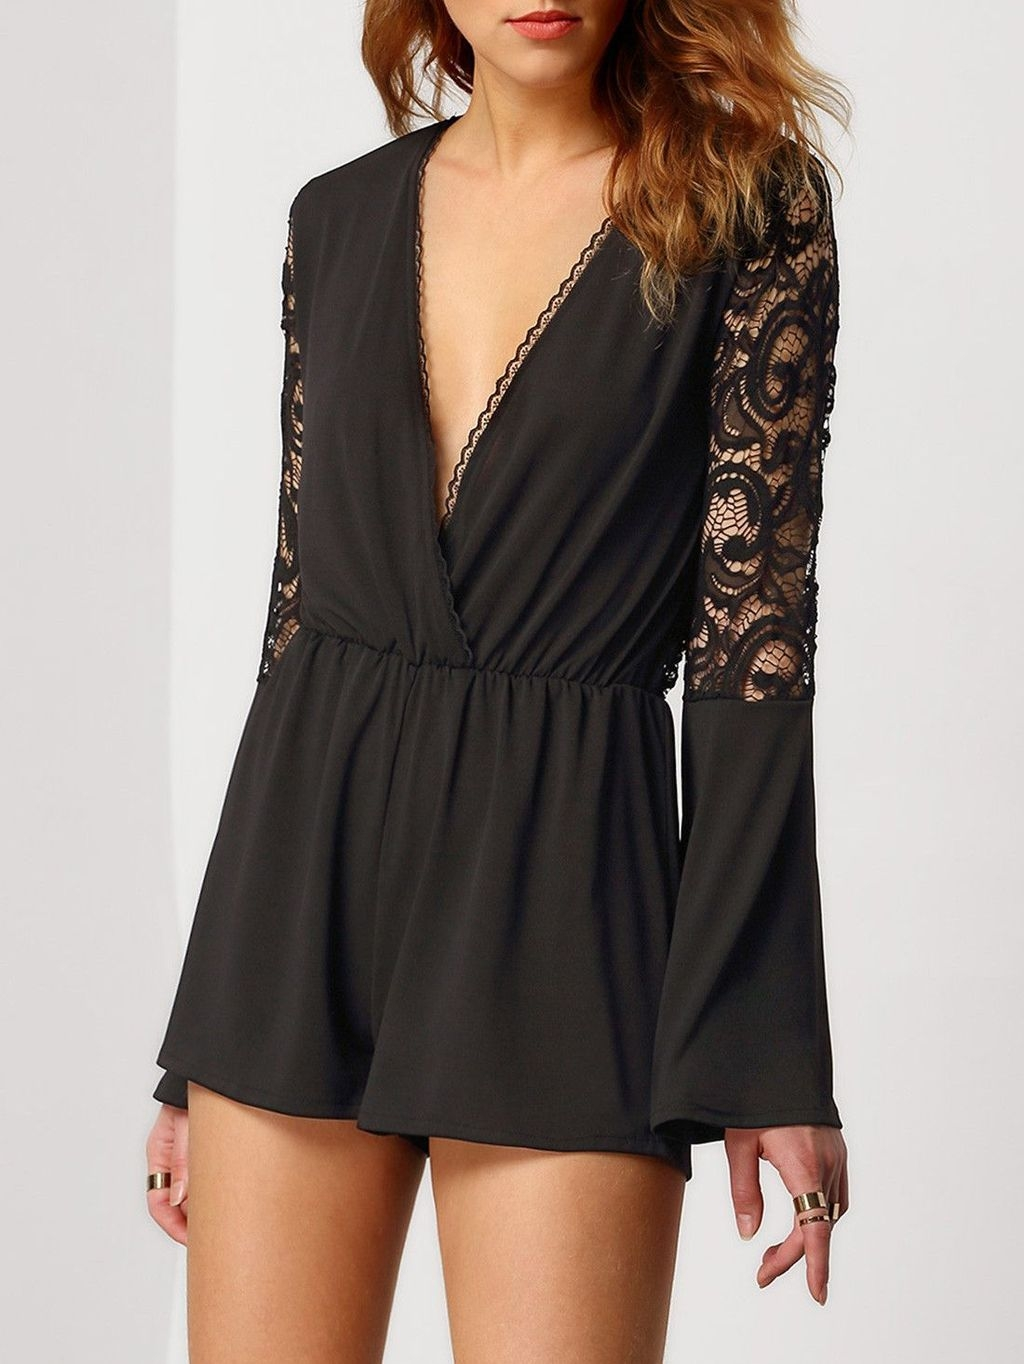 Adorable Black Romper Outfit Ideas